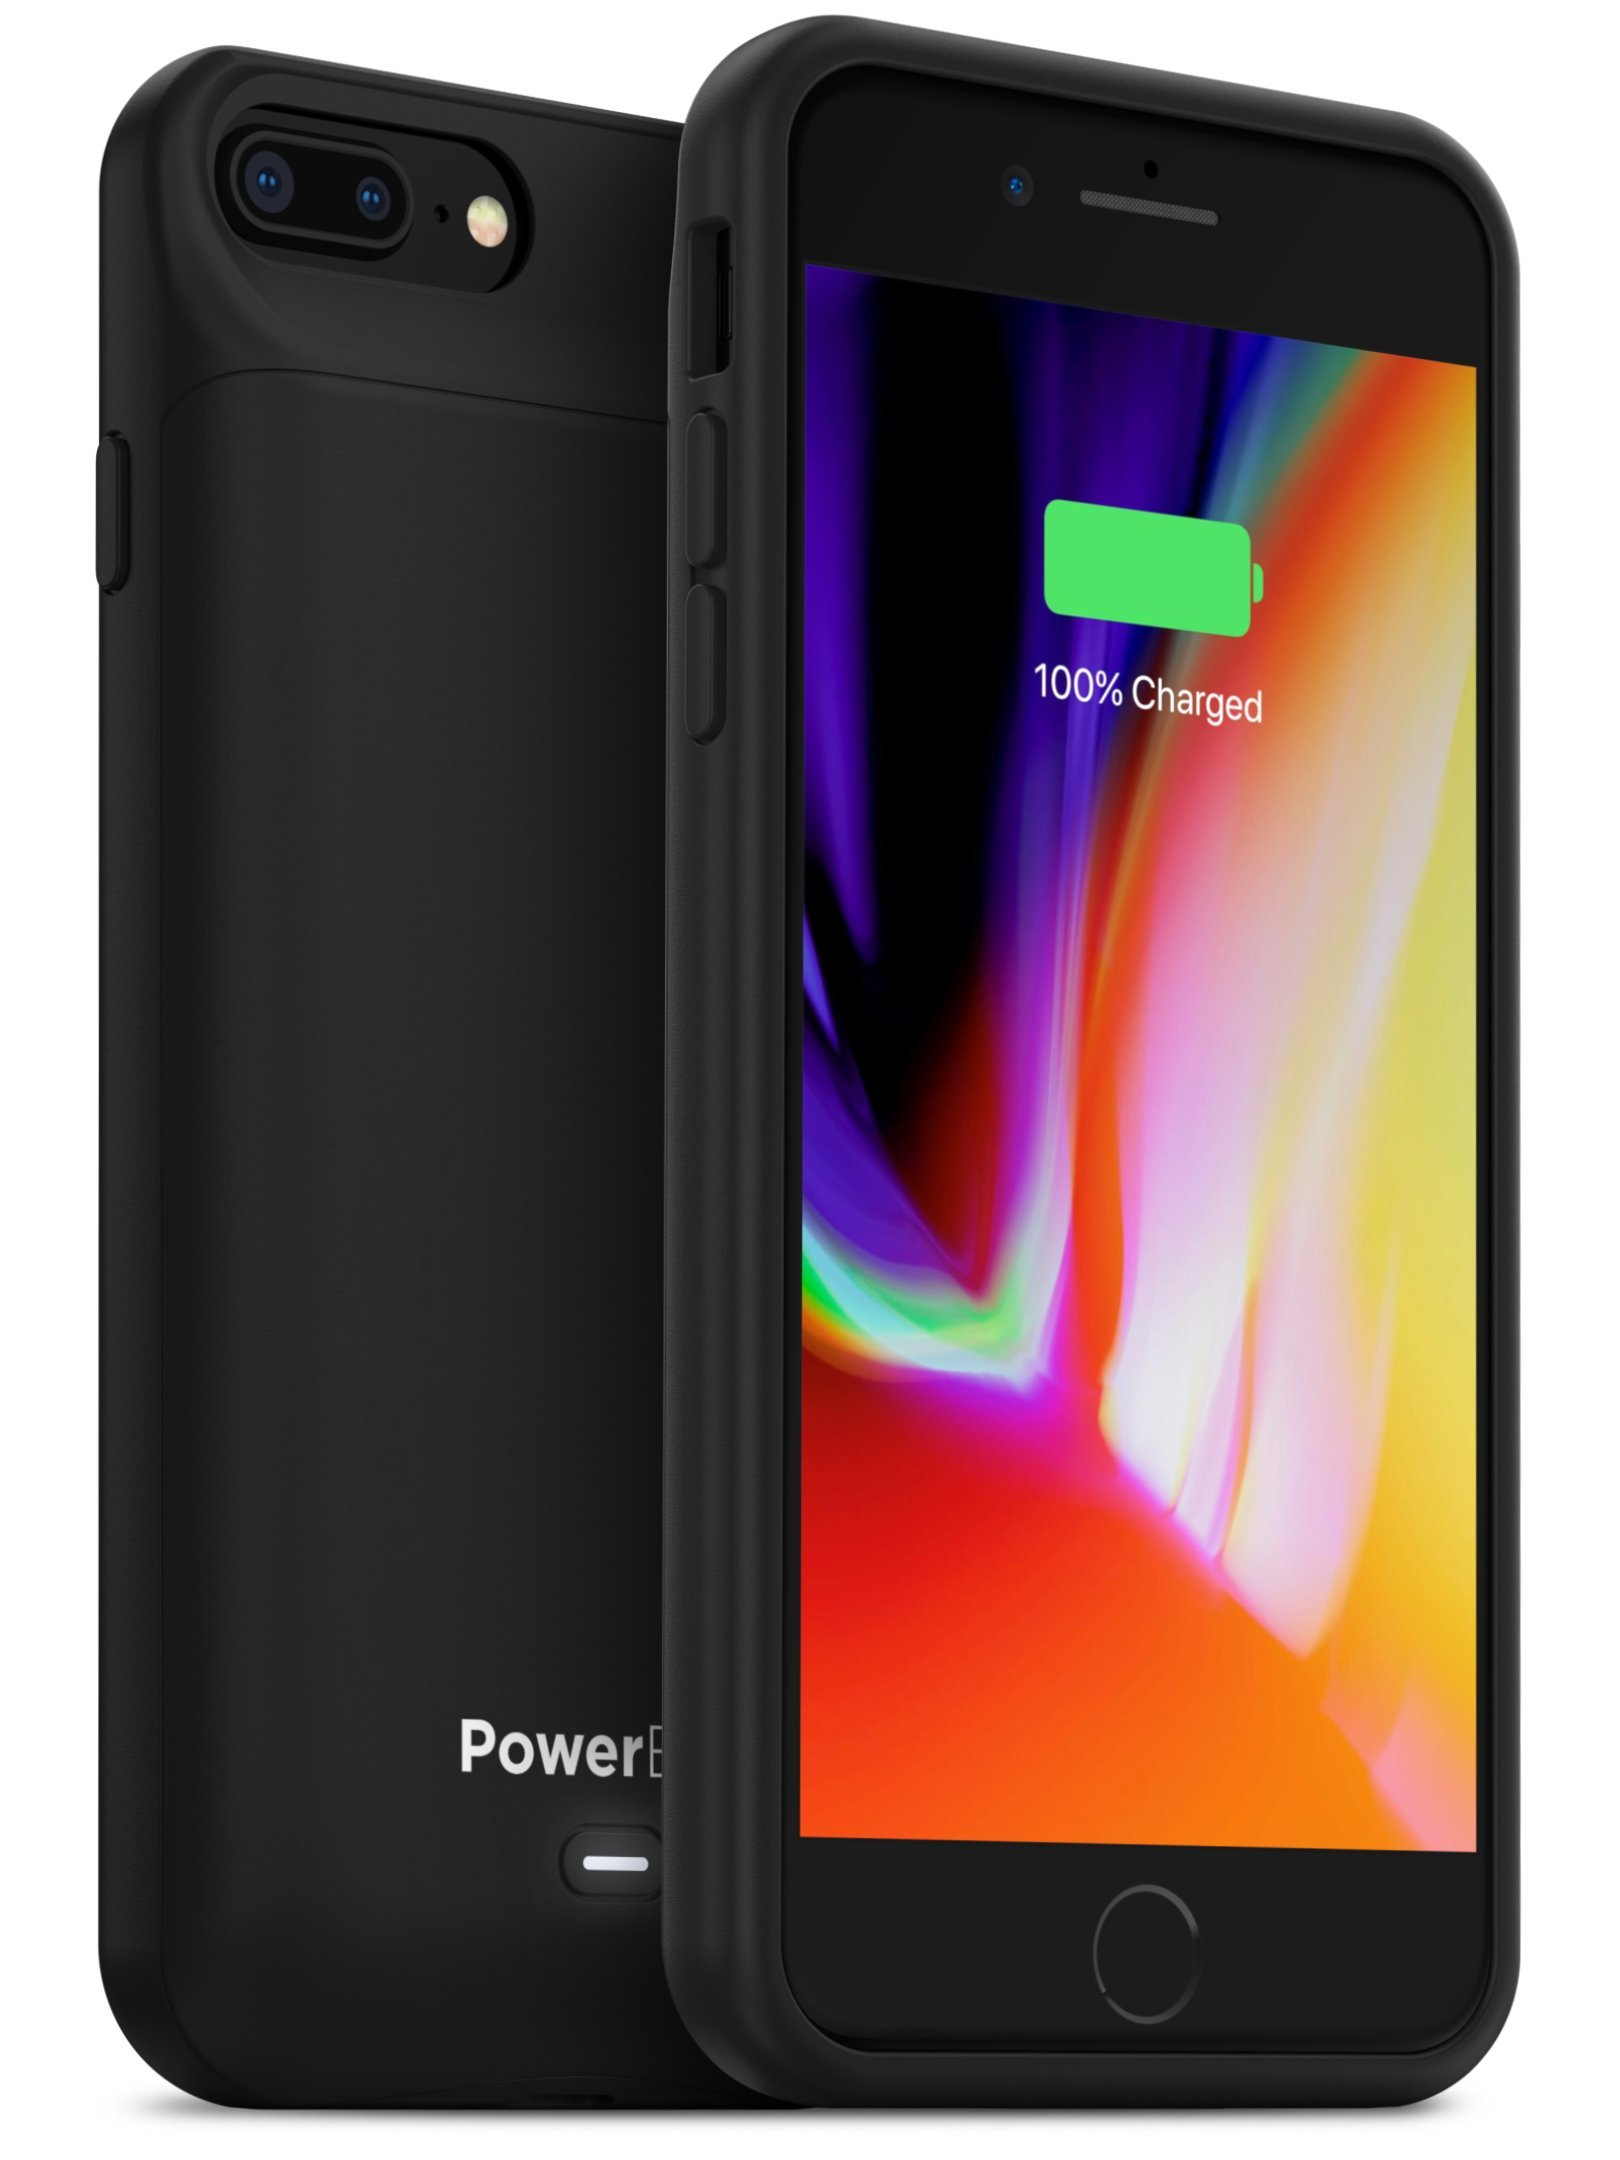 PowerBear iPhone 7 Plus Battery Case/iPhone 8 Plus Battery Case [7200mAh] Music and Data Transfer | High Capacity Rechargeable Charger Pack (Up to 265% Extra Battery) - Black [24 Month Warranty]